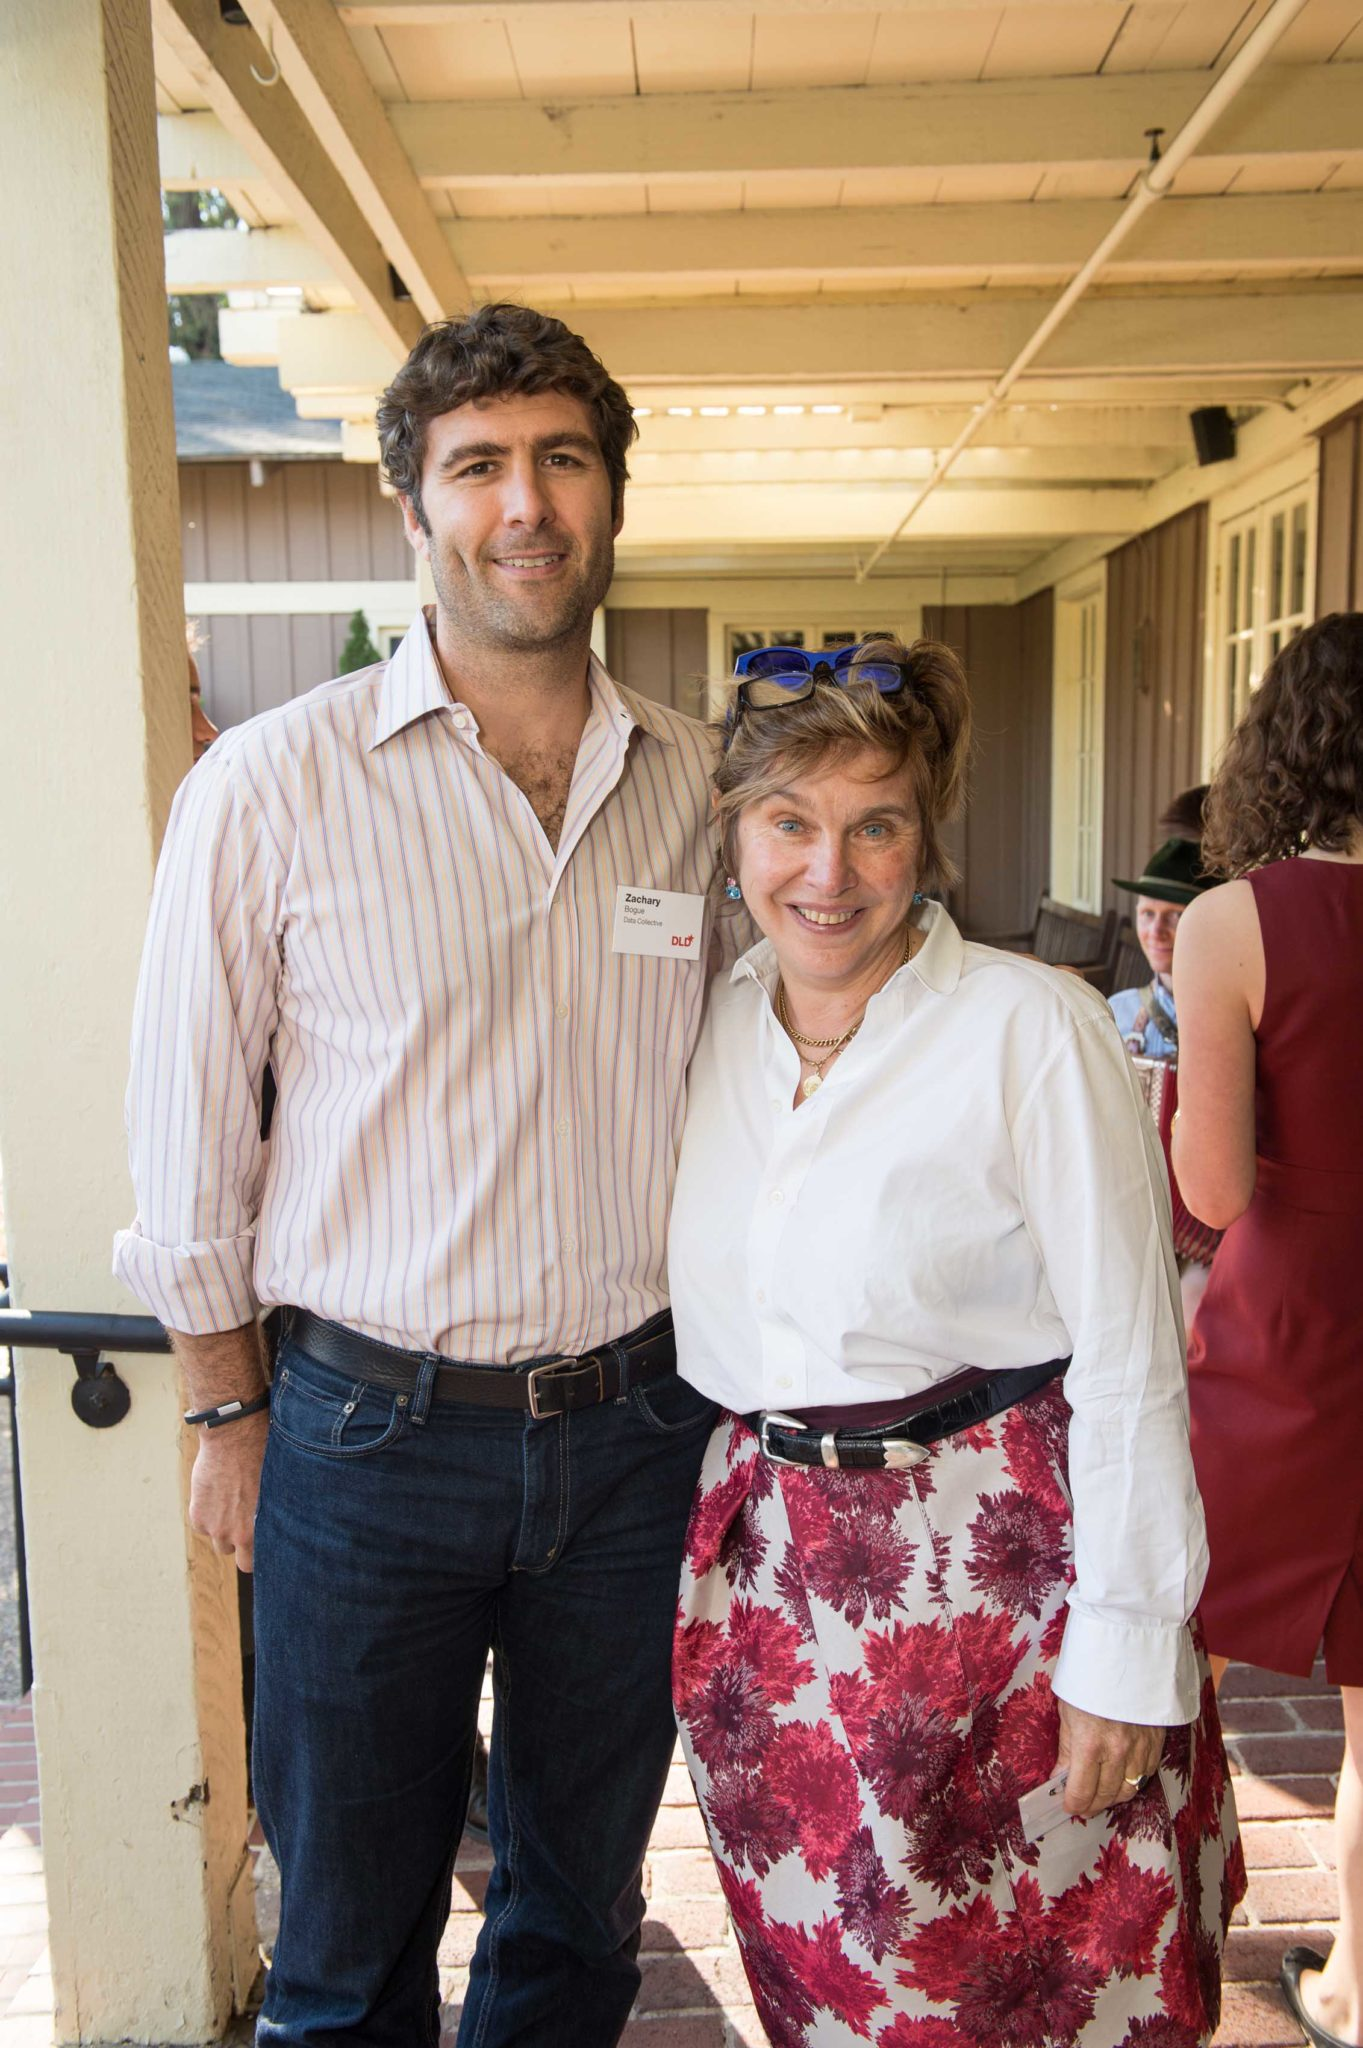 Entrepreneur & VC Zachary Bogue and Founder of DLD Steffi Czerny.Photos Courtesy of Drew Altizer.